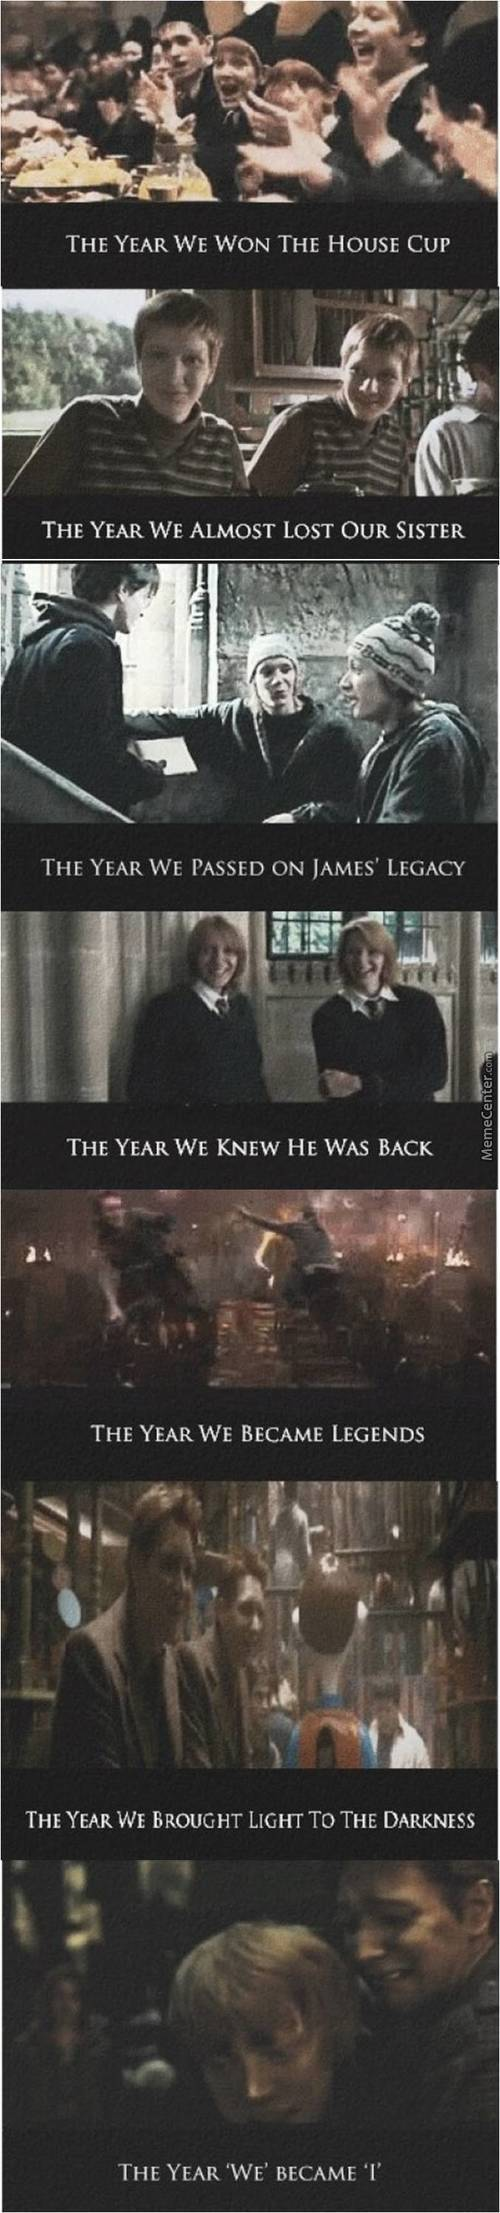 The Books According To Fred And George